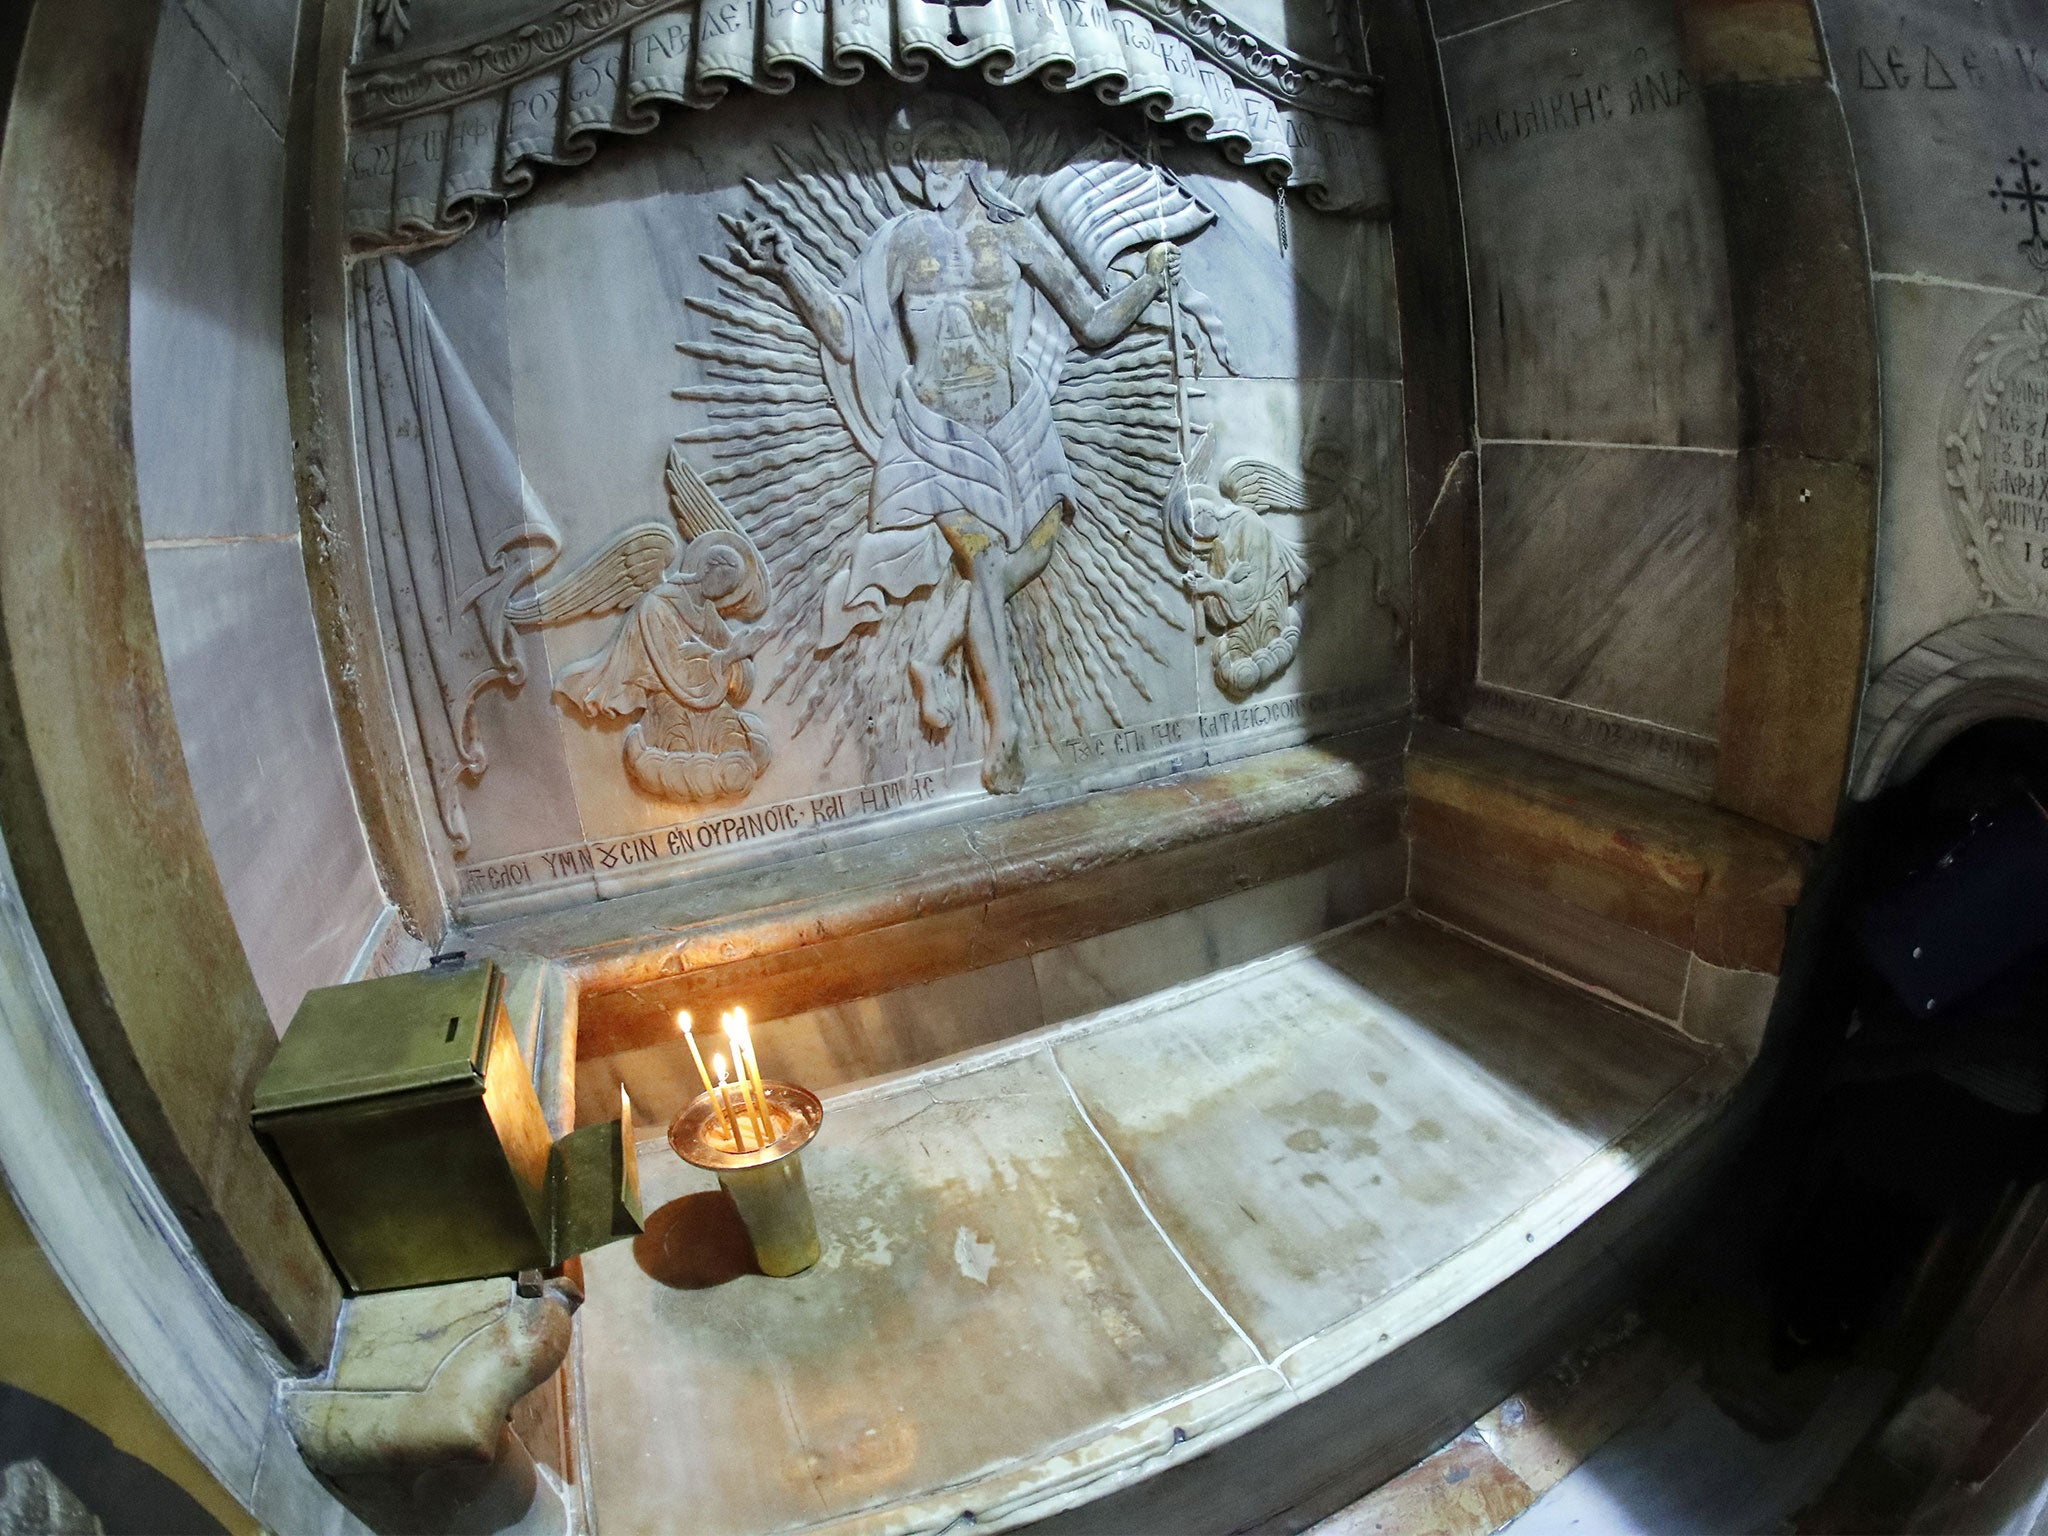 Opening of Jesus Christ's tomb for first time in 500 years leads to new discovery